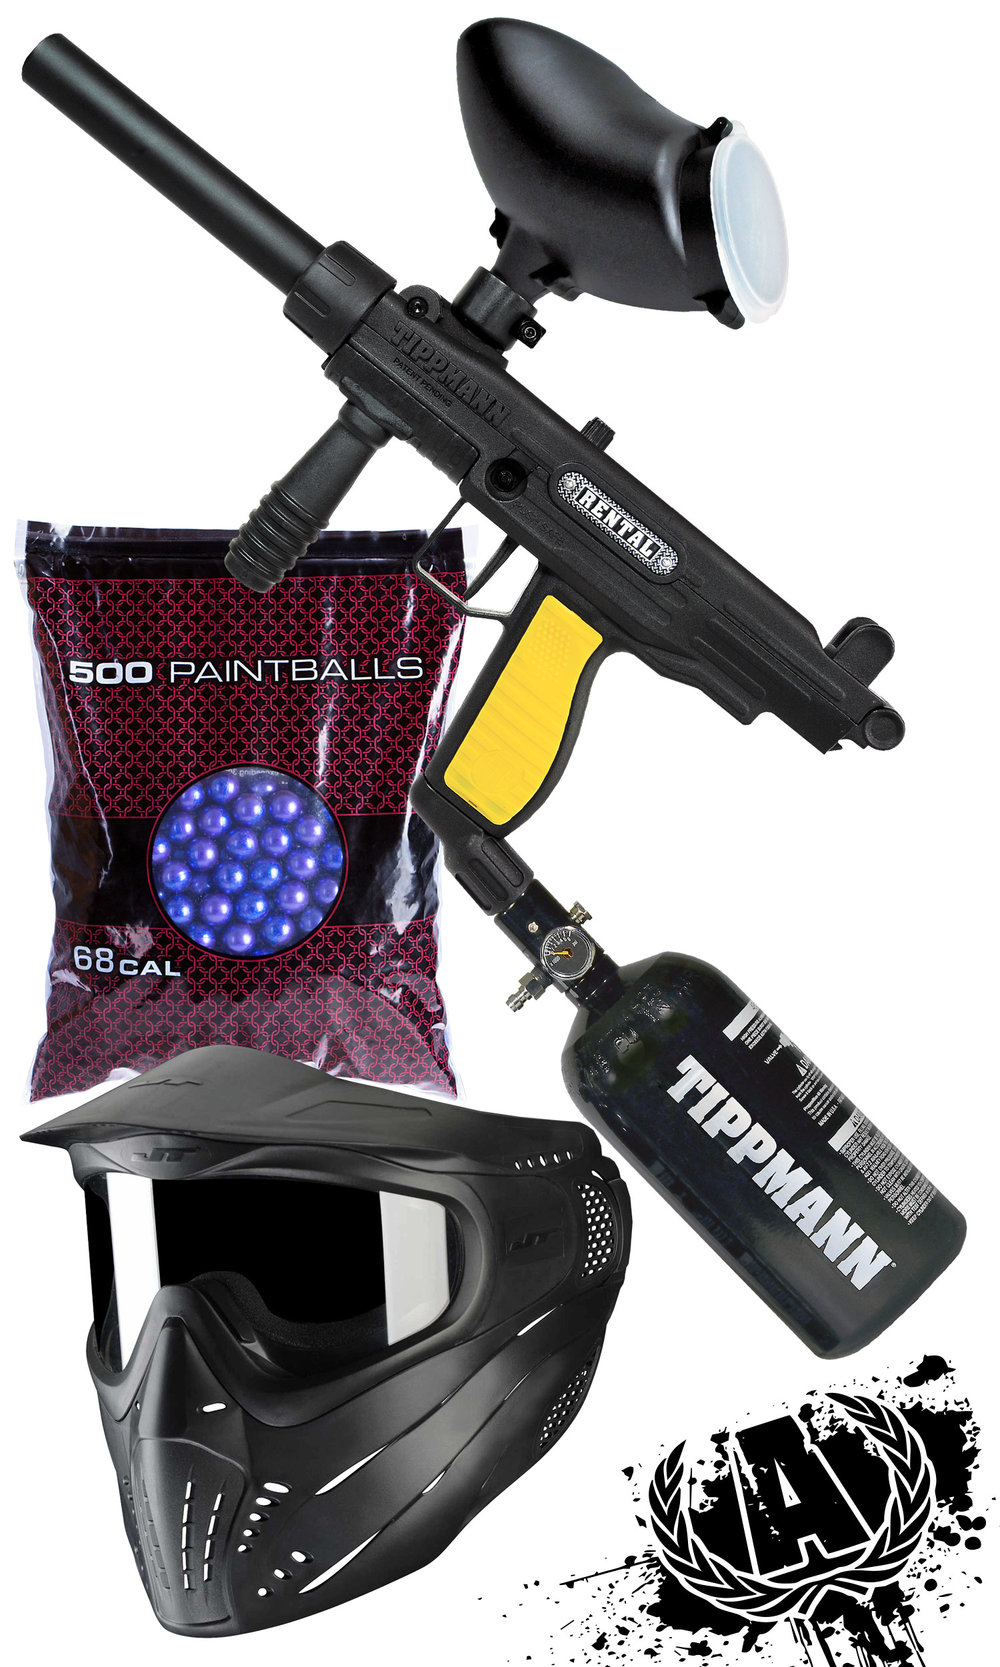 Includes, all day entry, all day air, paintball marker, hopper, air tank, mask, and 500 rounds of paintballs - Premium Package $39.99